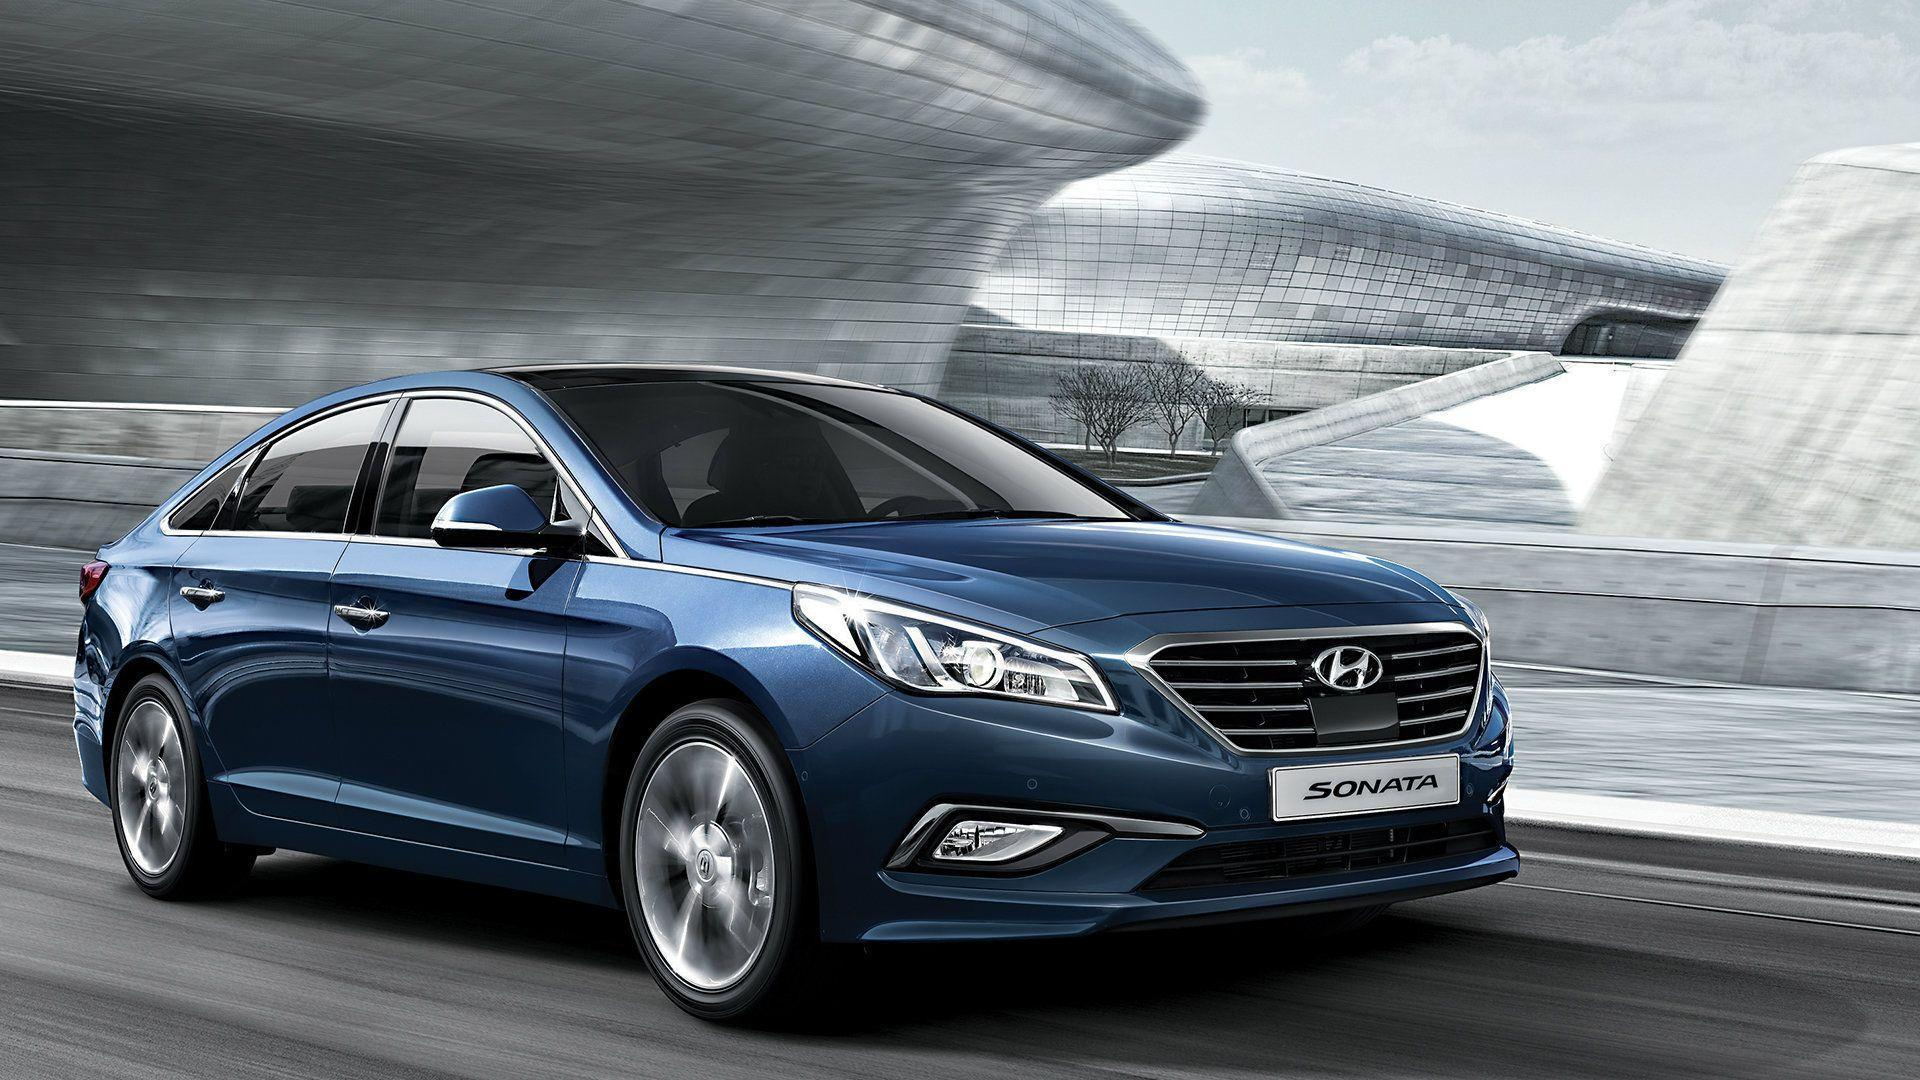 Hyundai Cars Wallpapers